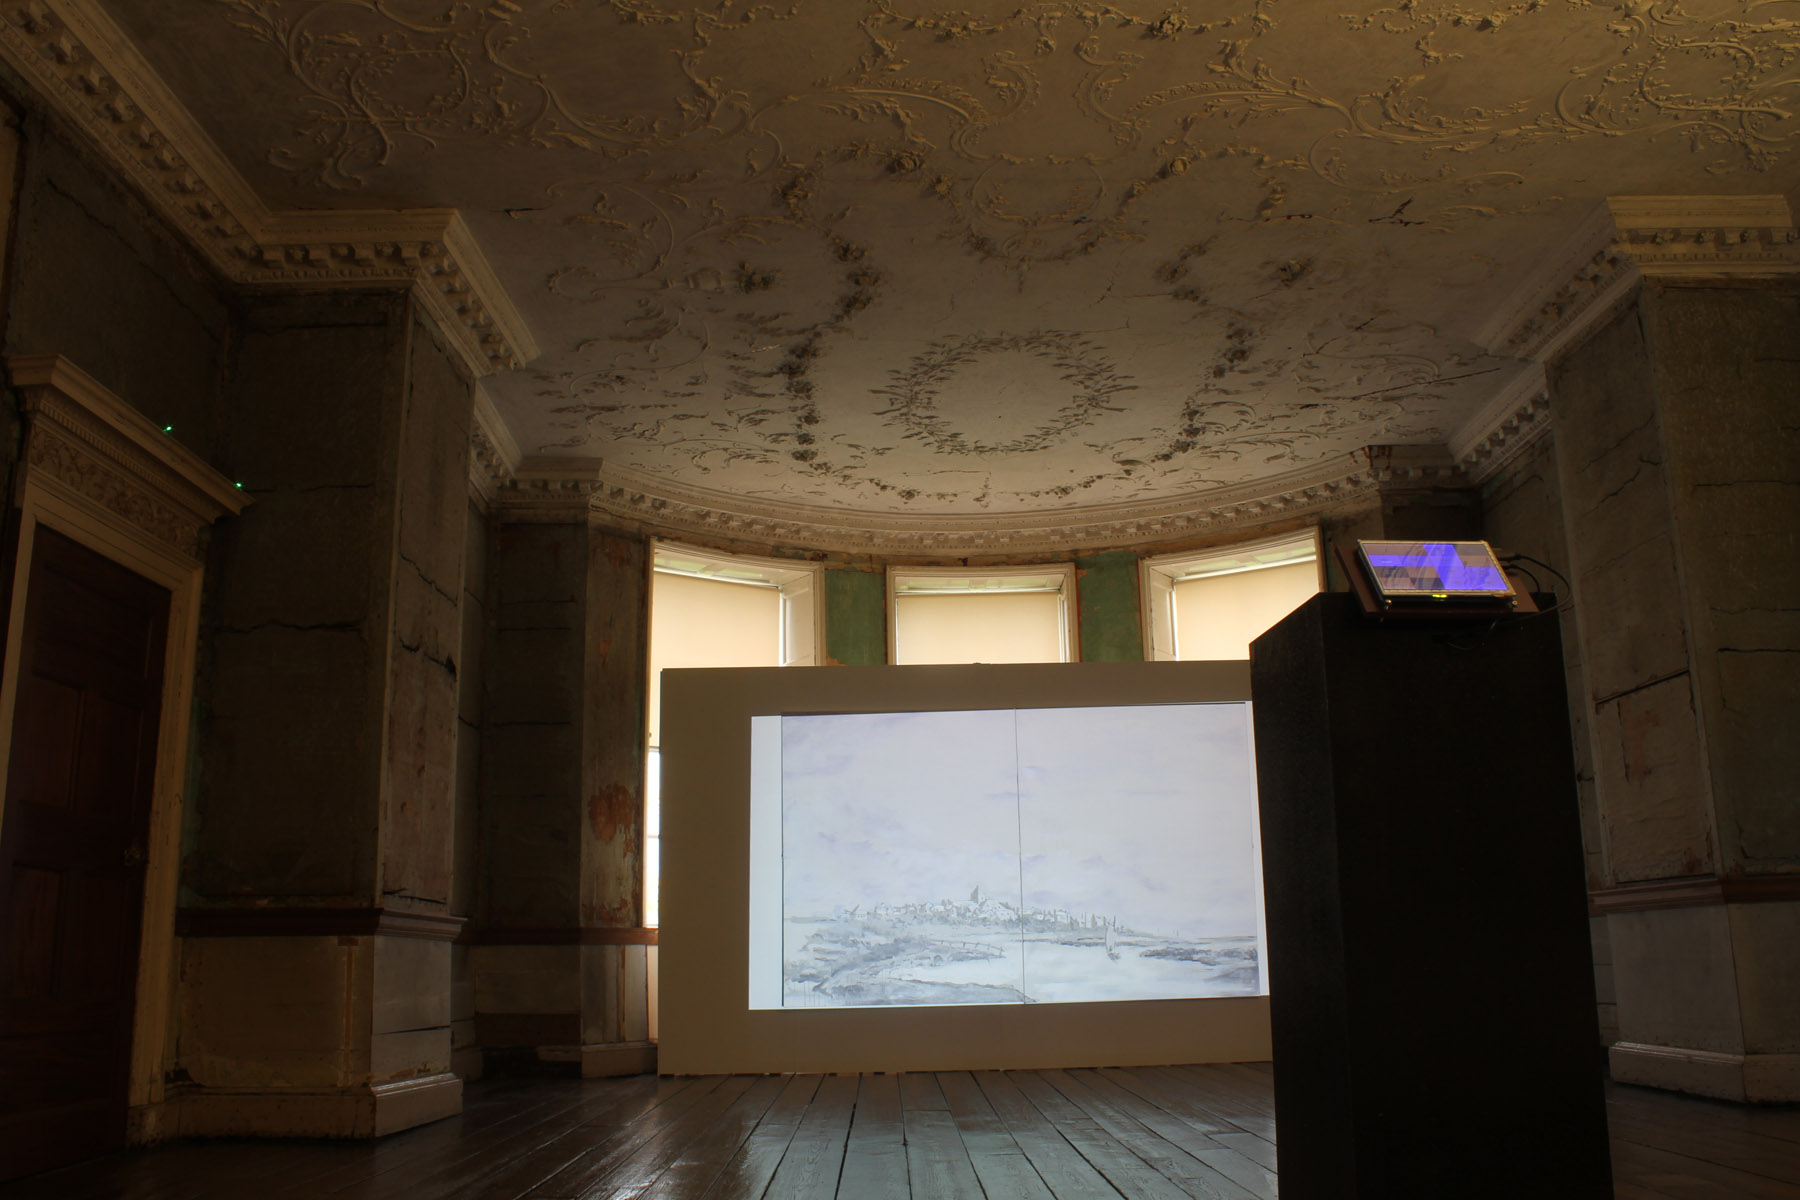 A mixed media installation, faigh ar ais as an fharraige, in its second exhibition at rathfarnham castle, dublin